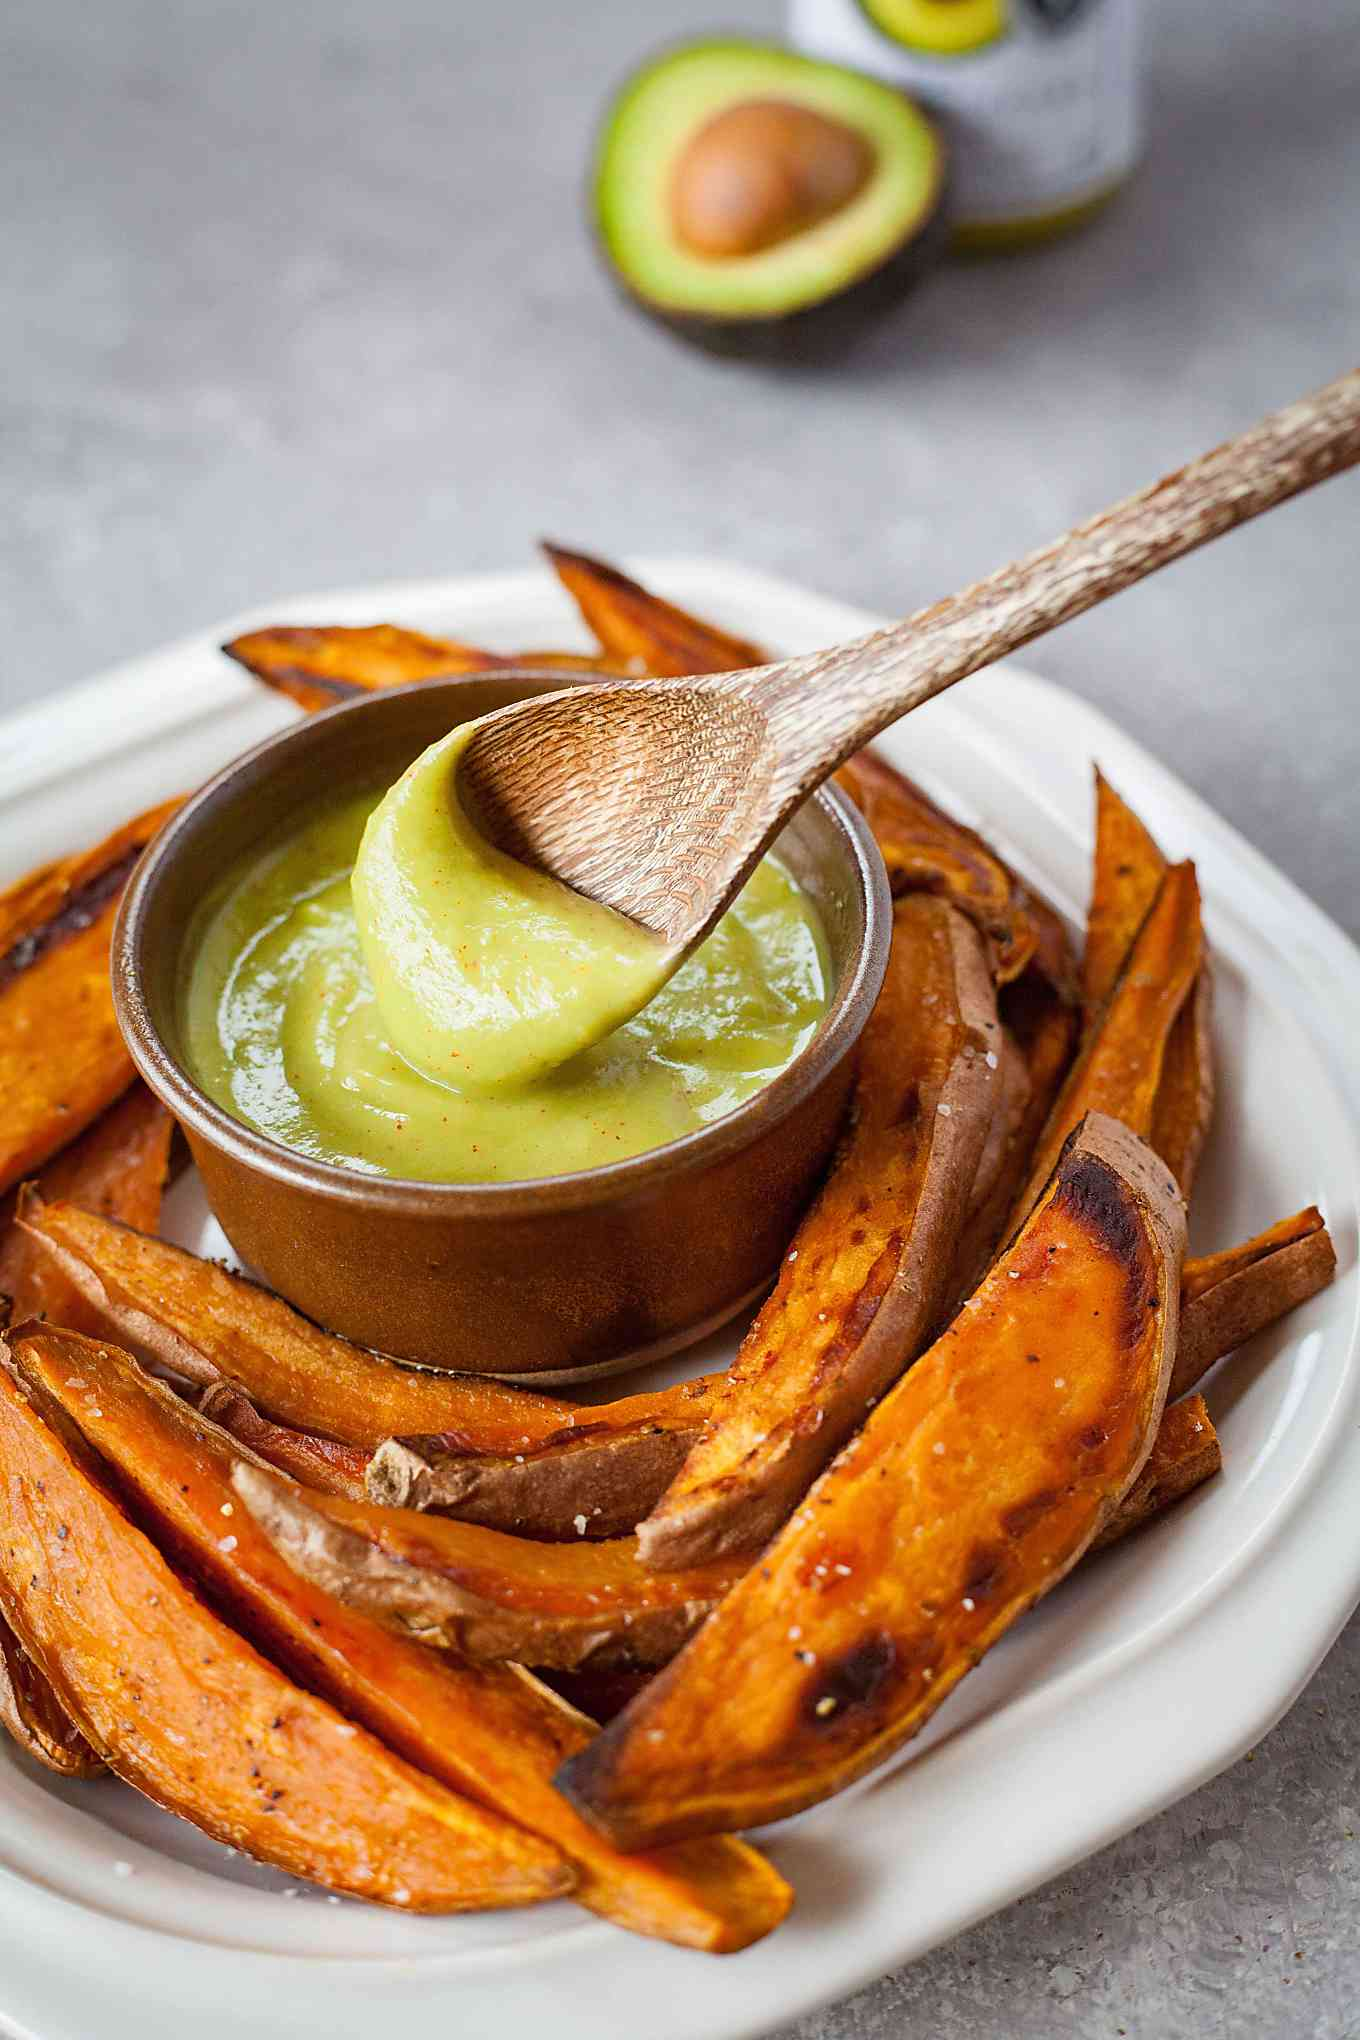 close up image of sweet potato fries on plate with wooden spoon dipped in bowl of mustard